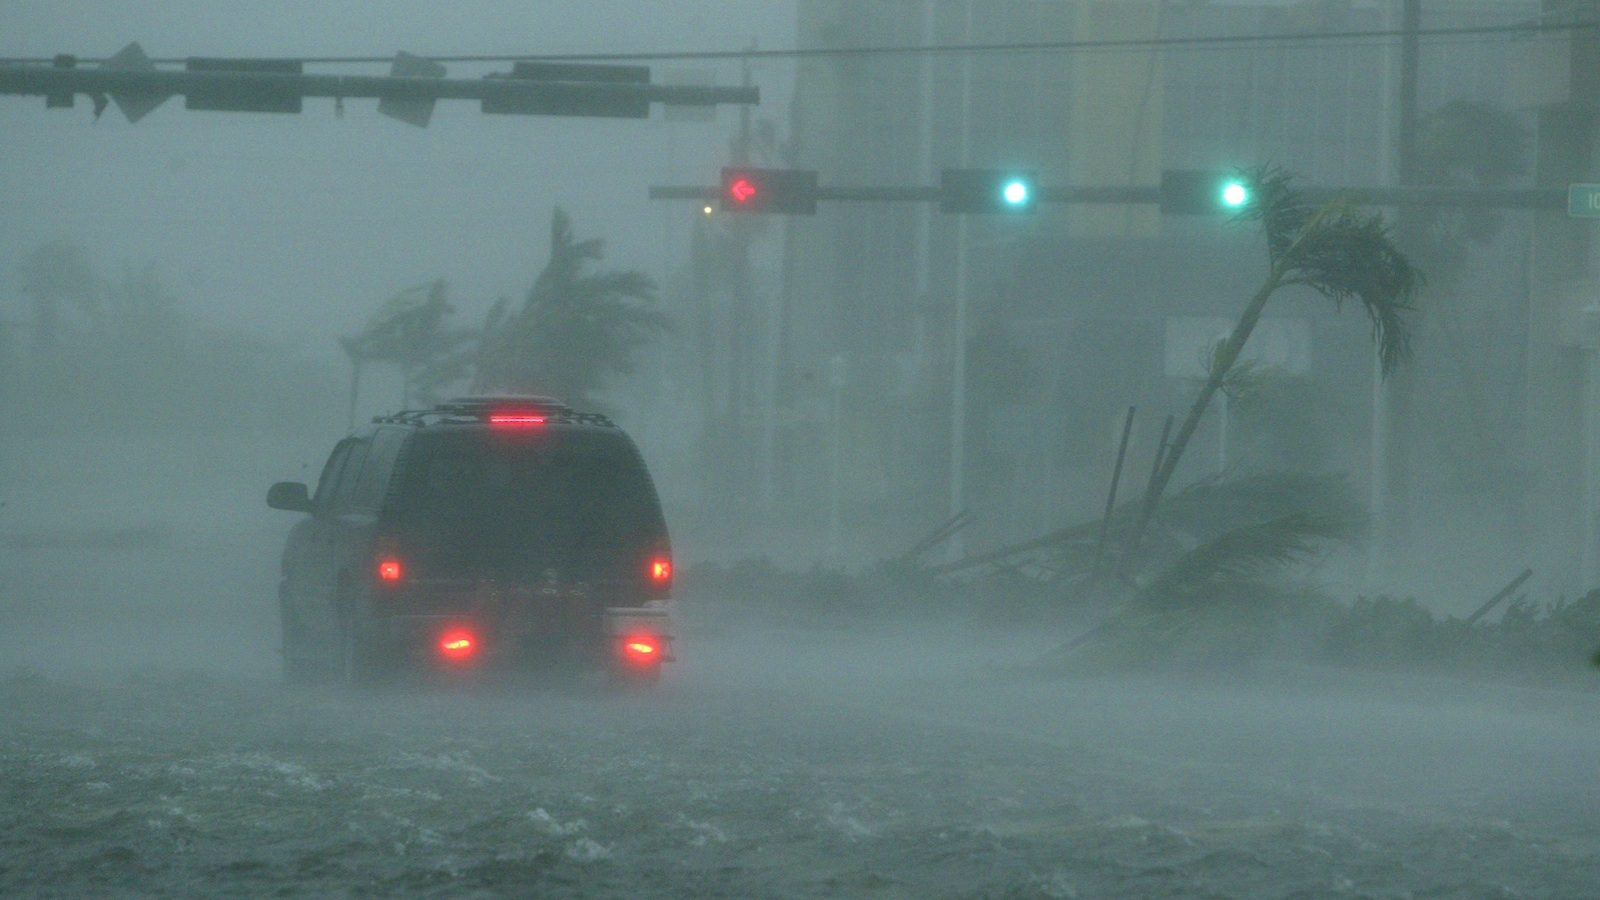 An SUV passes through flooding in downtown Naples, Florida, as Hurricane Wilma passes over the city in Oct. 2005.